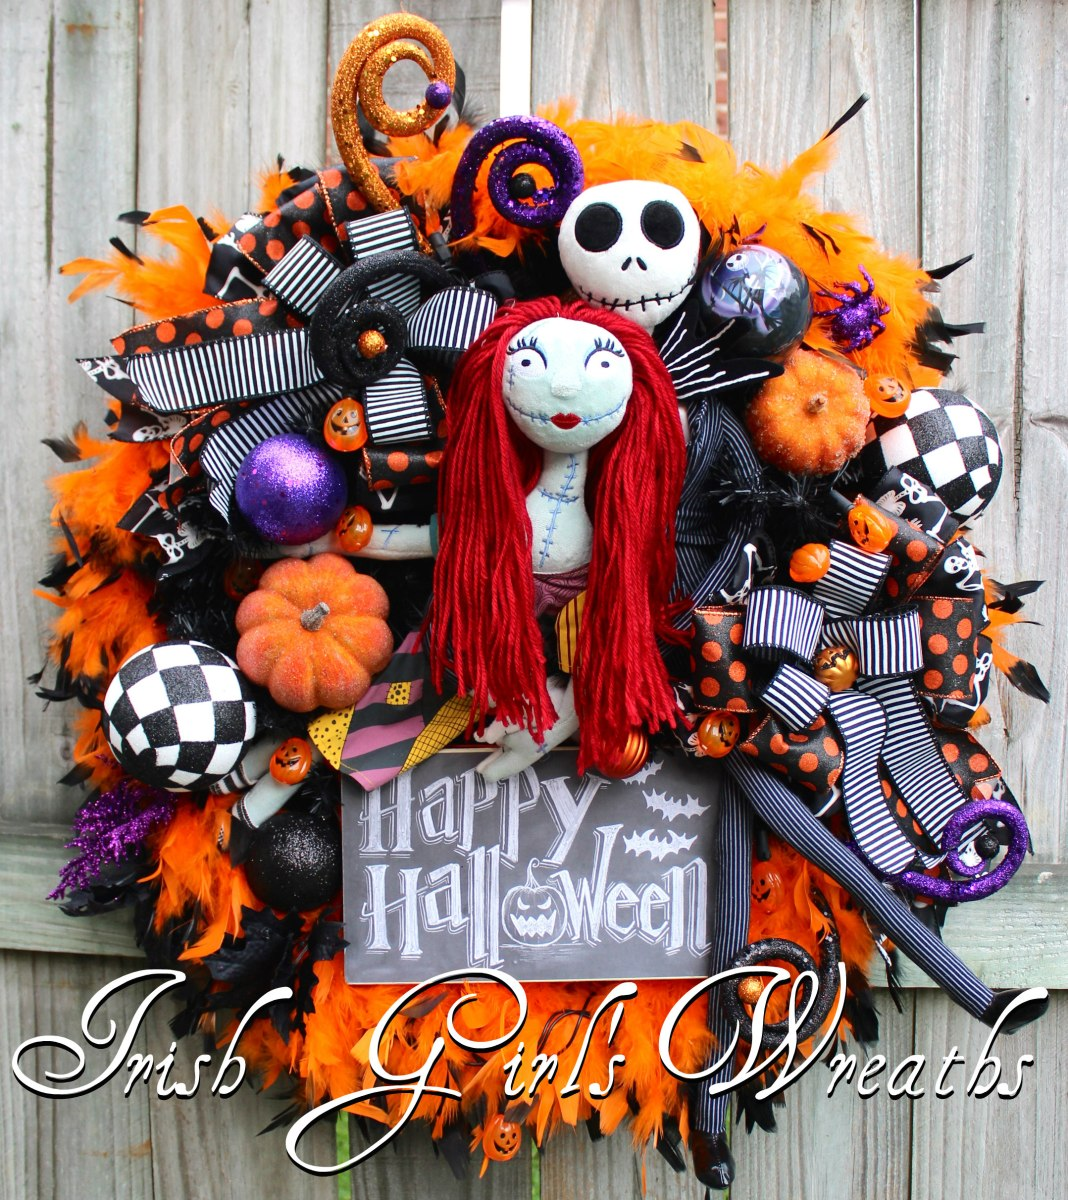 Irish girl 39 s wreaths where the difference is in the - Jack skellington decorations halloween ...